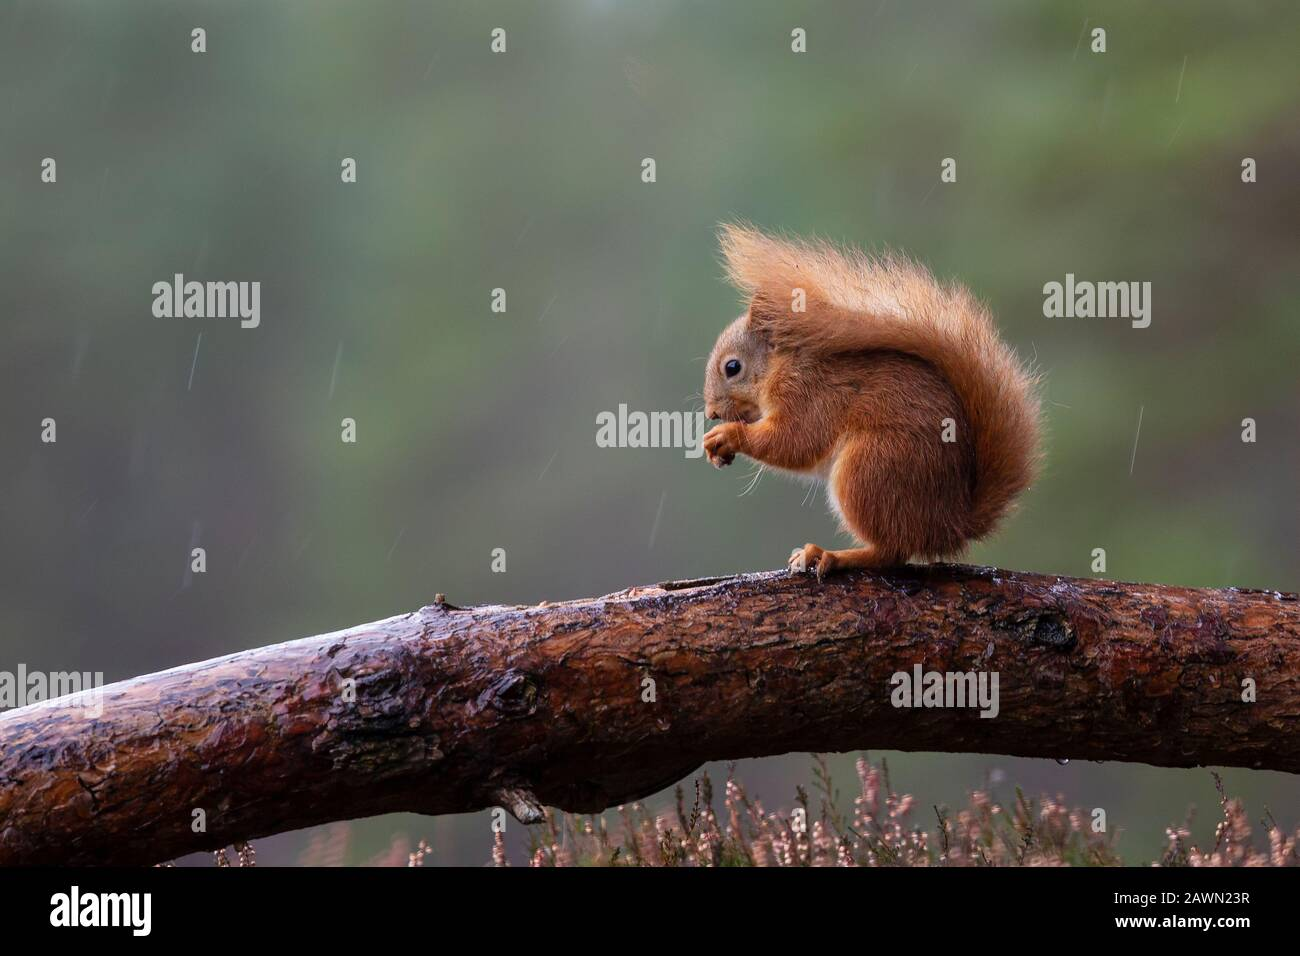 Red Squirrel Sciurus vulgaris perched on a log eating a hazel nut in damp and overcast weather in Scotland U.K. Stock Photo